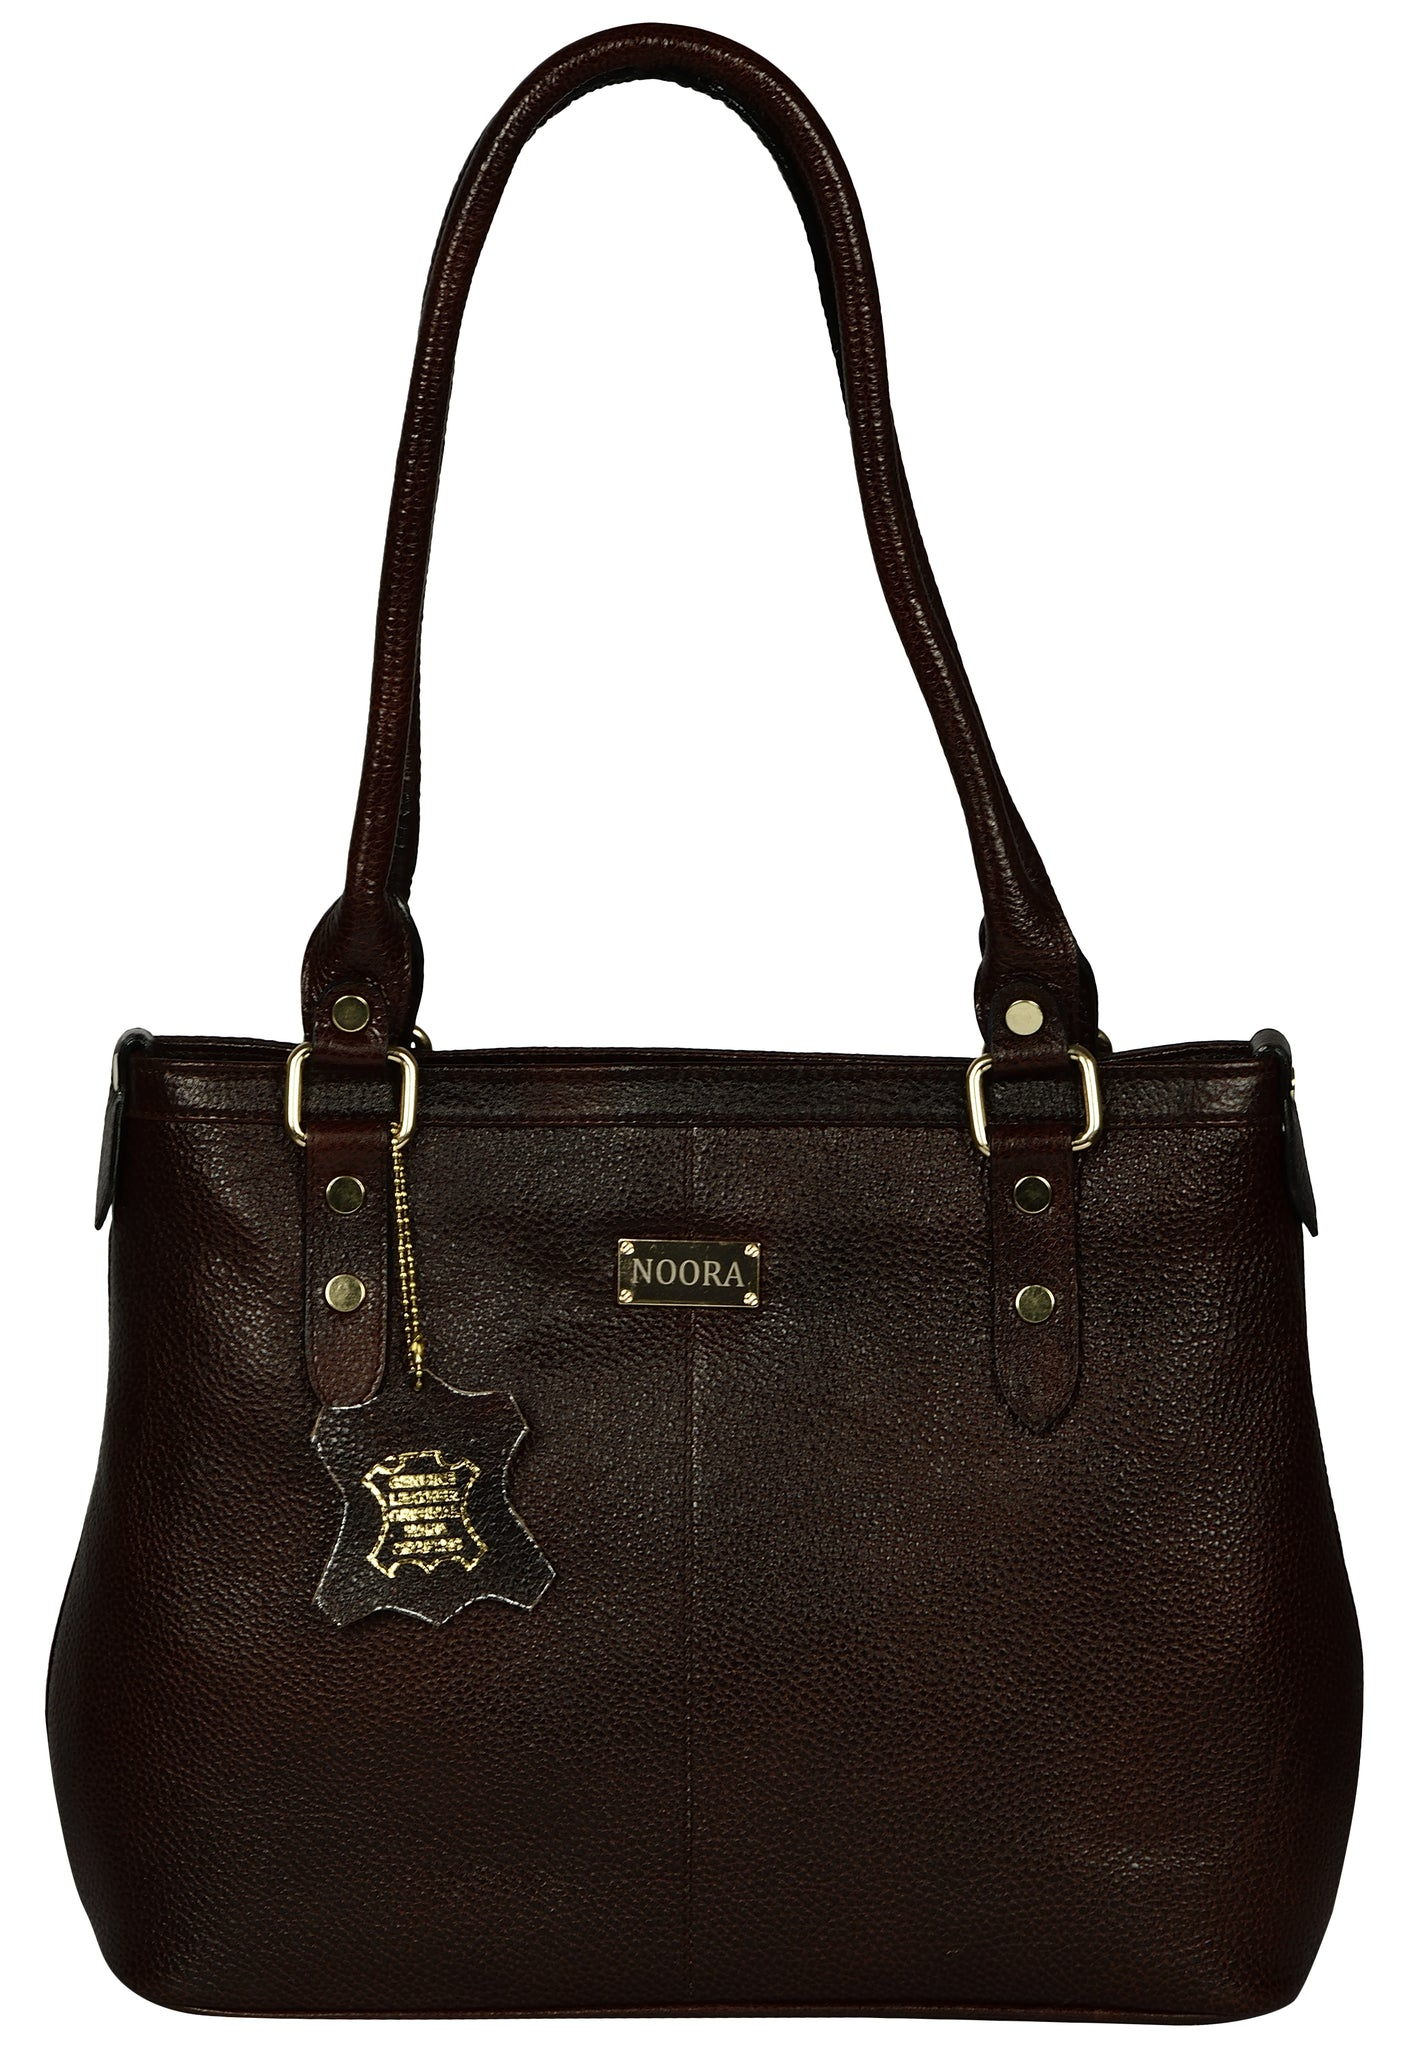 dark brown satchel leather bag